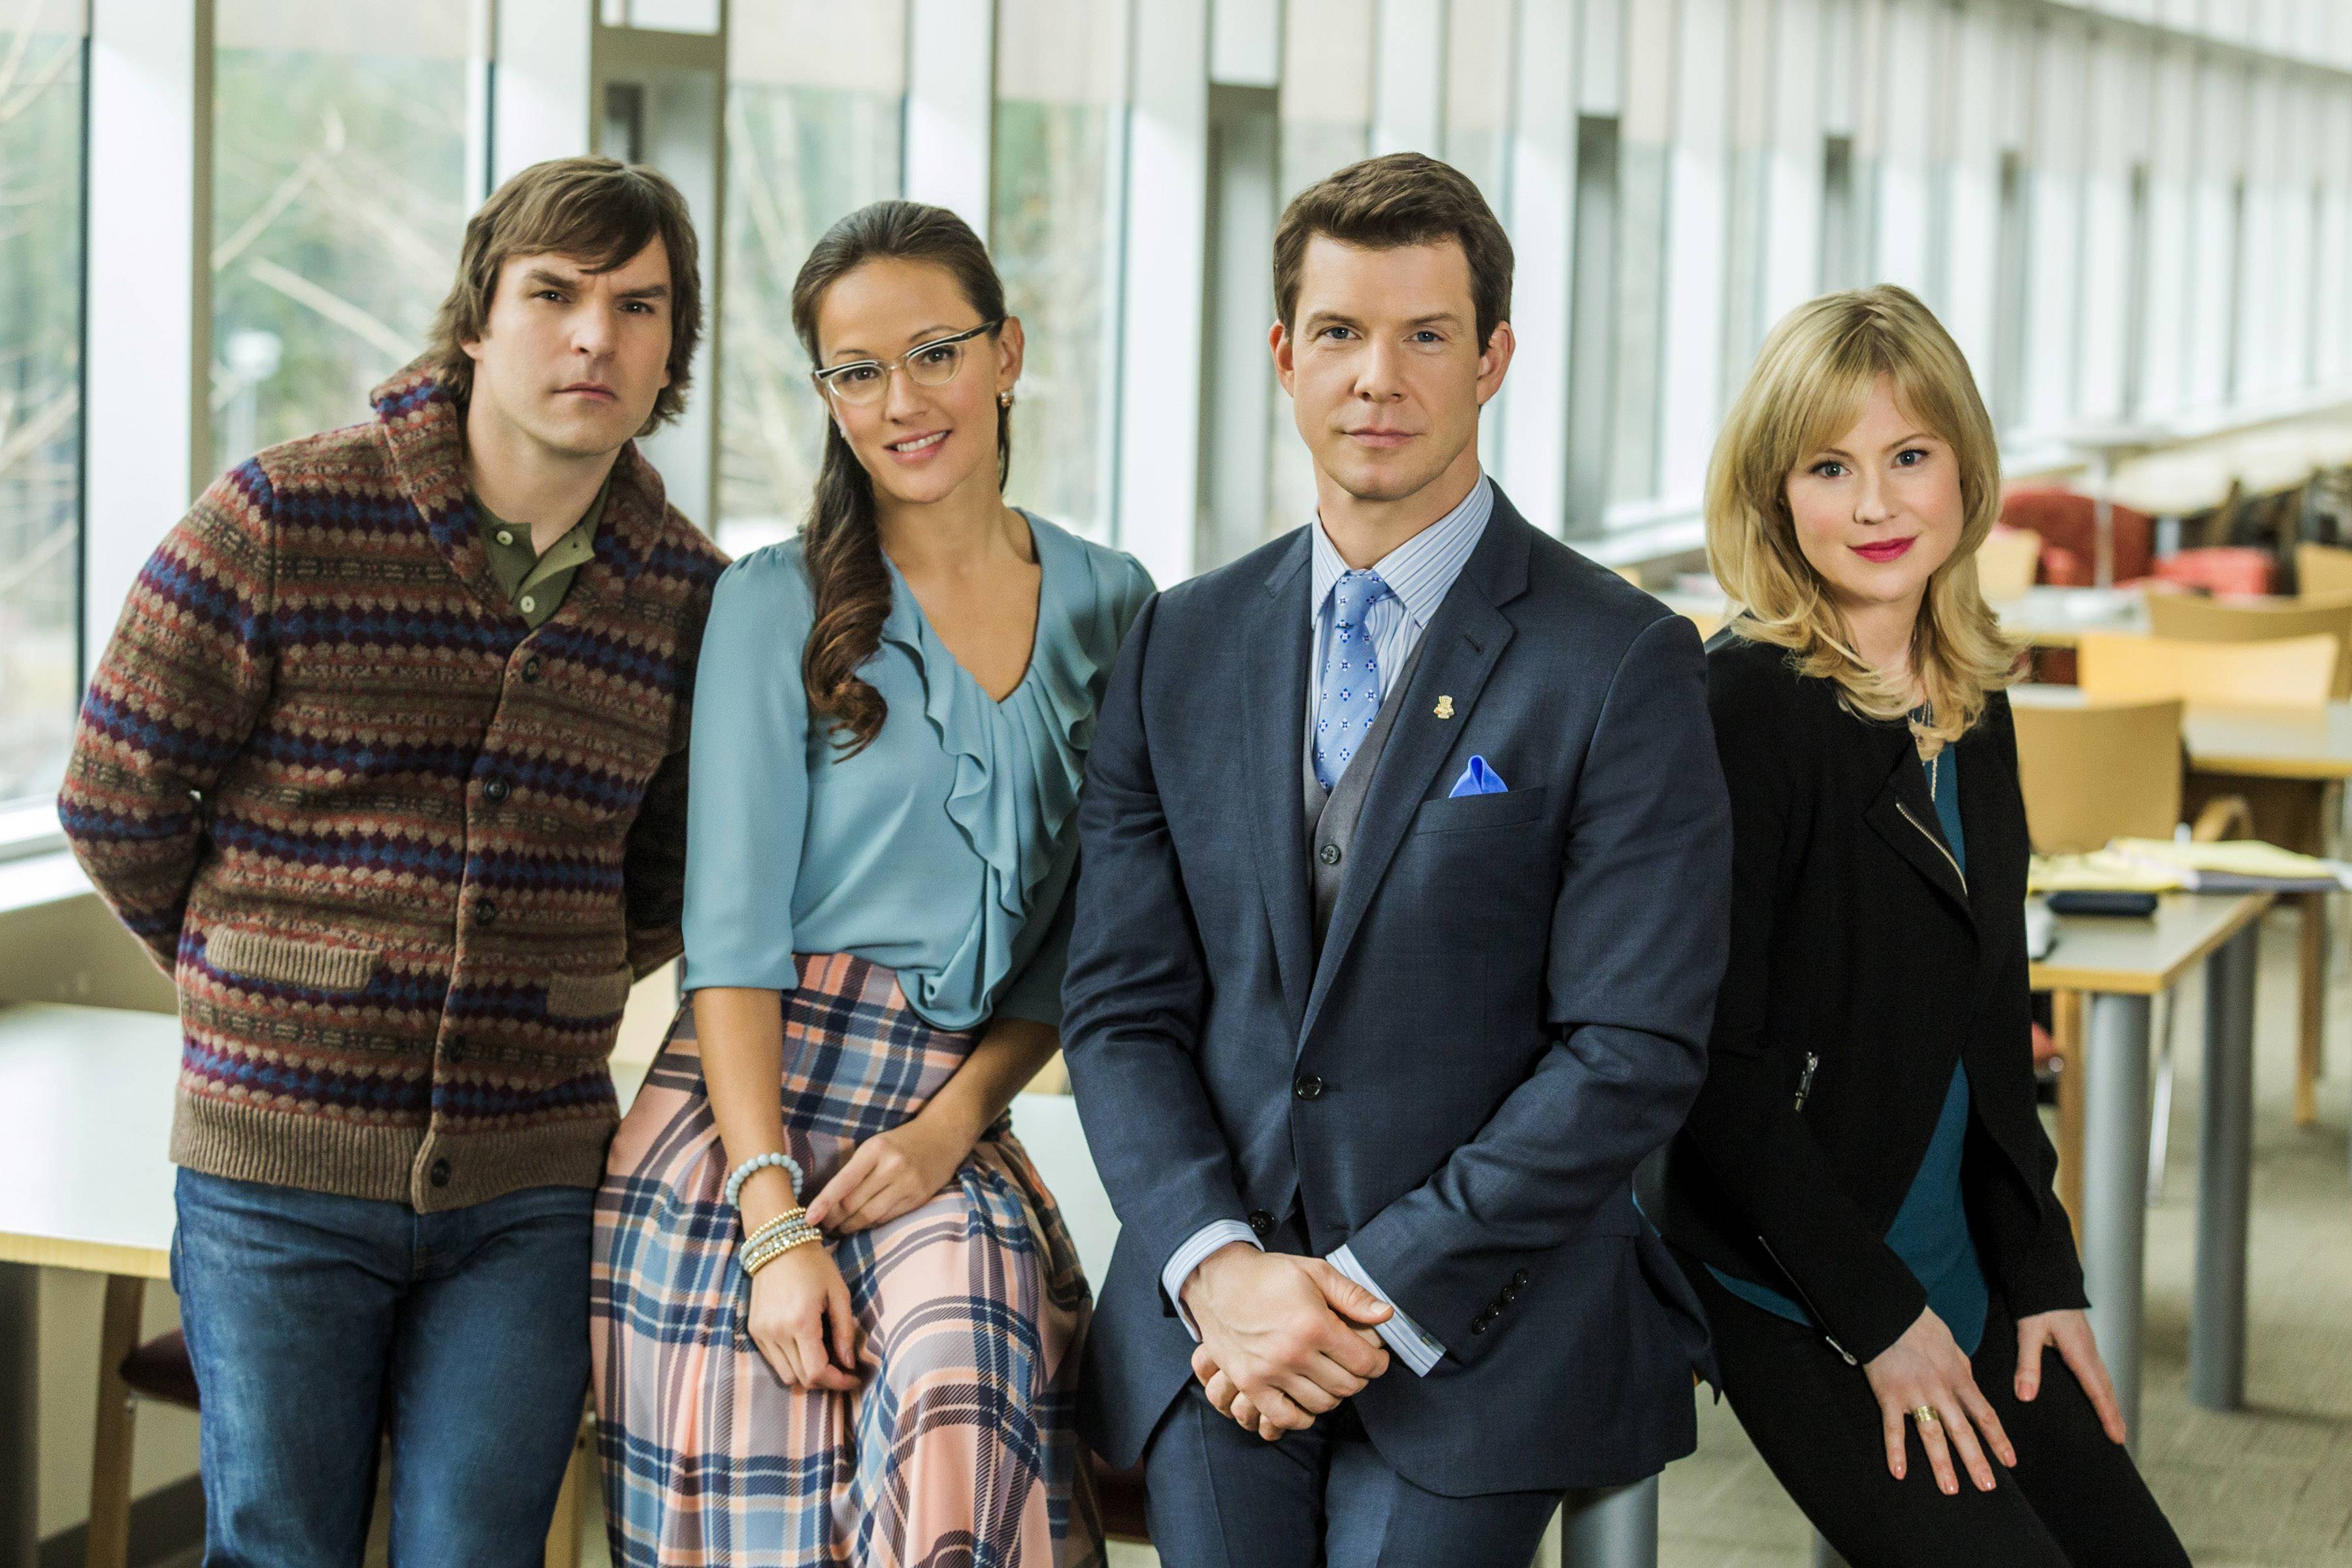 "This photo provided by Hallmark Channel shows, from left, Geoff Gustafson (""Norman Dorman""), Crystal Lowe (""Rita Haywith""), Eric Mabius (""Oliver O'Toole) and Kristin Booth (""Shane McInerny""), on the set of the TV series, ""Signed, Sealed, Delivered.""  The writer-producer Martha Williamson, who produced ""Touched by an Angel,"" returns to TV with the new Hallmark Channel show, debuting Sunday."